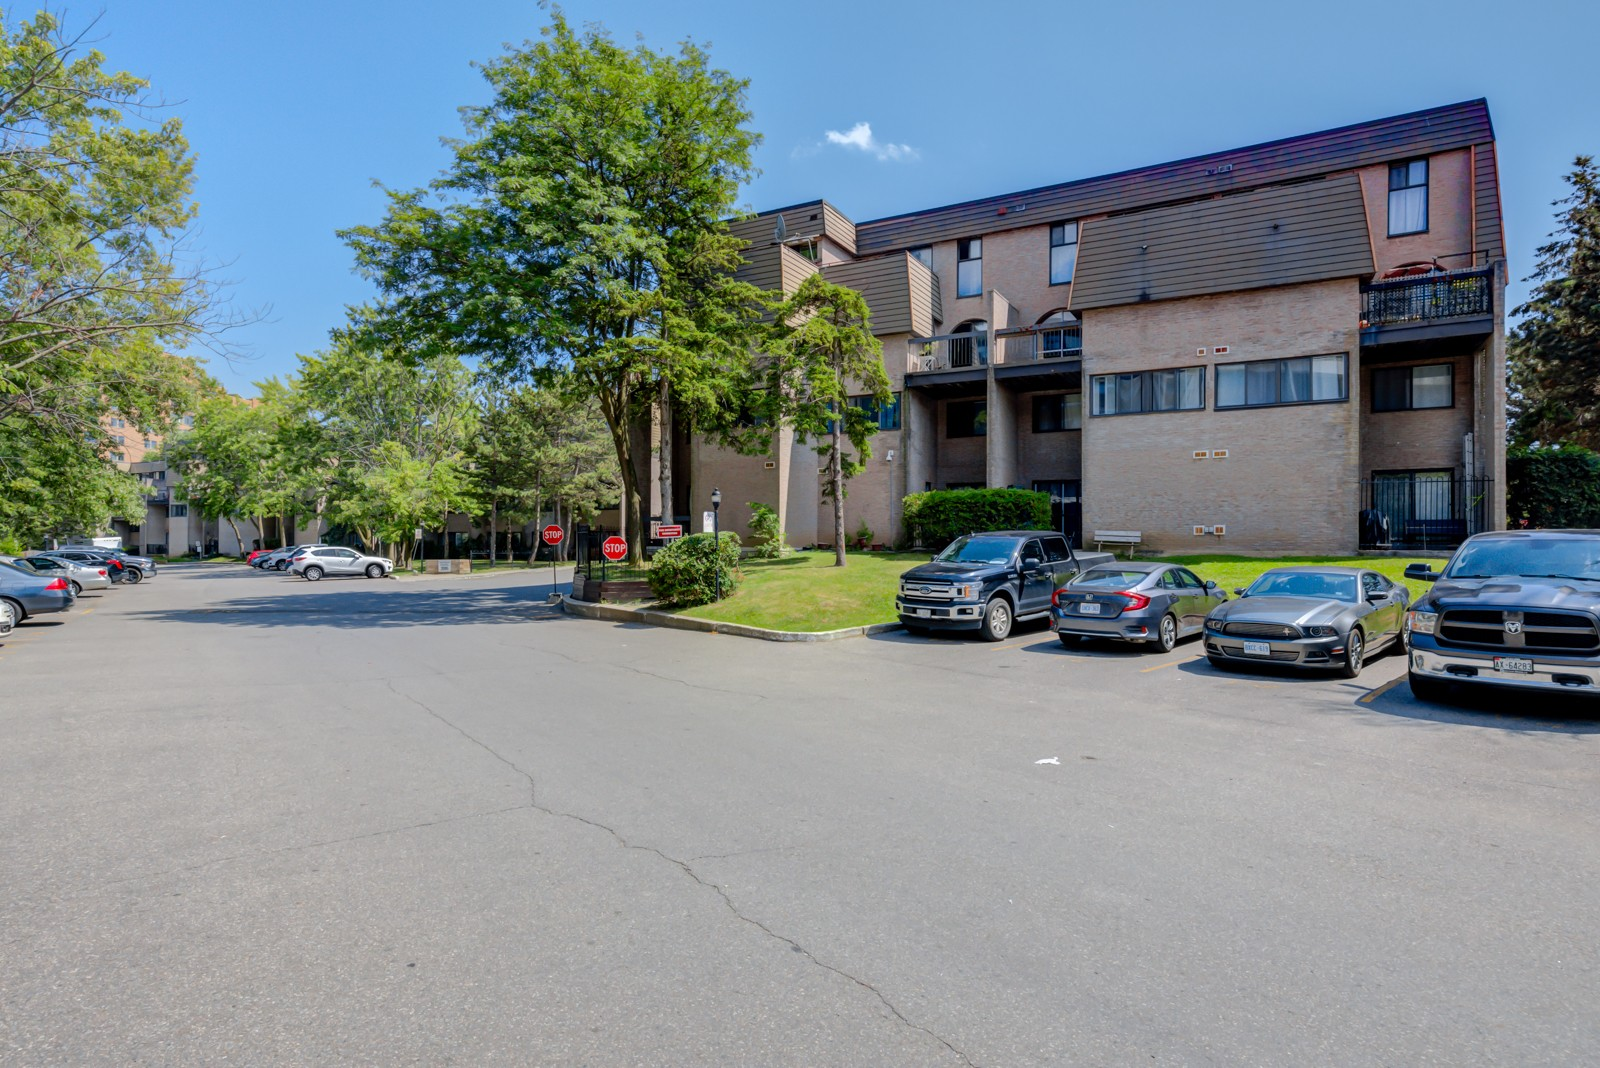 2095 Roche Court Townhouses at 2095 Roche Crt, Mississauga 0